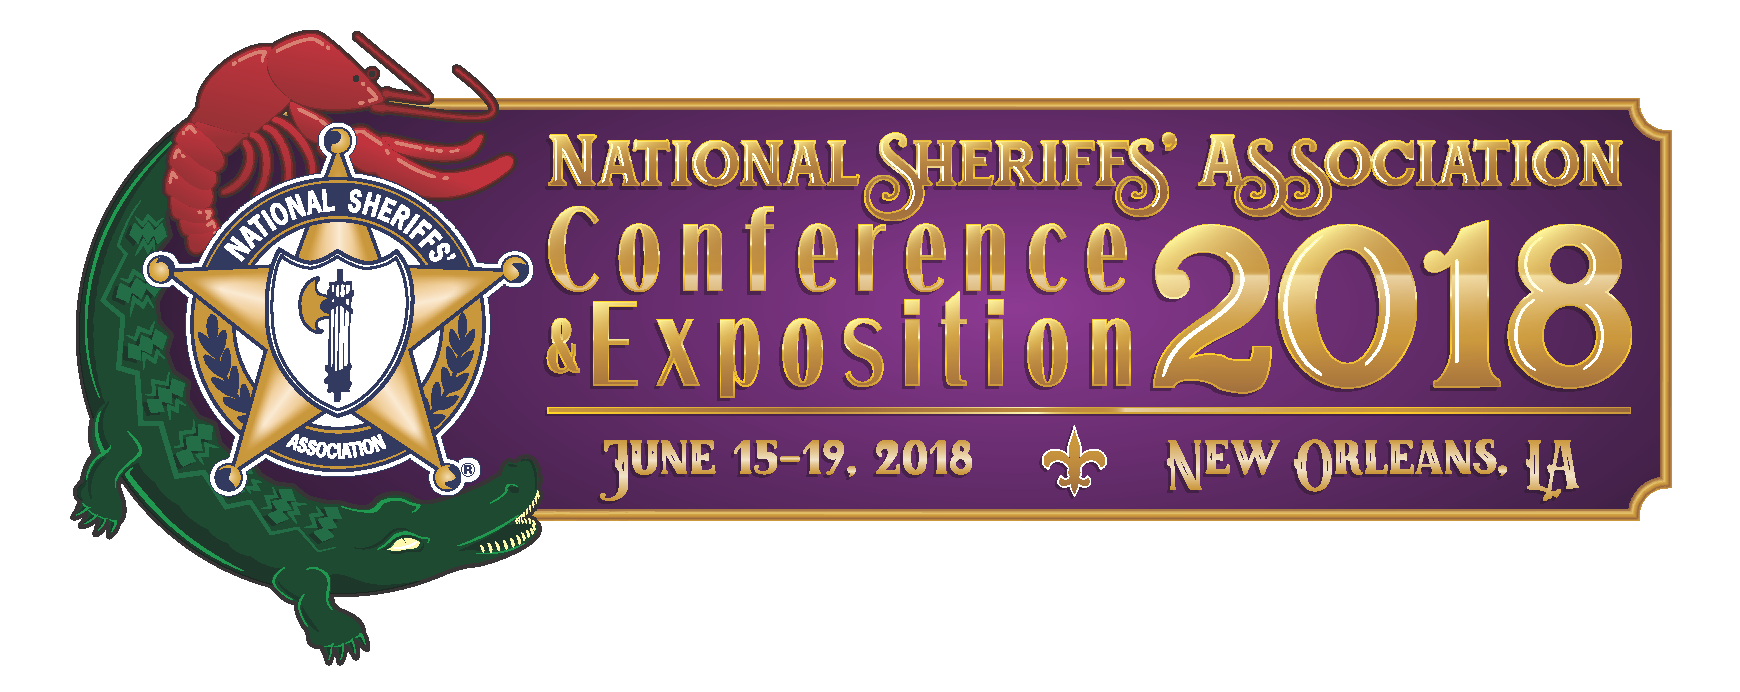 National Sheriffs Association Conference & Expo 2018